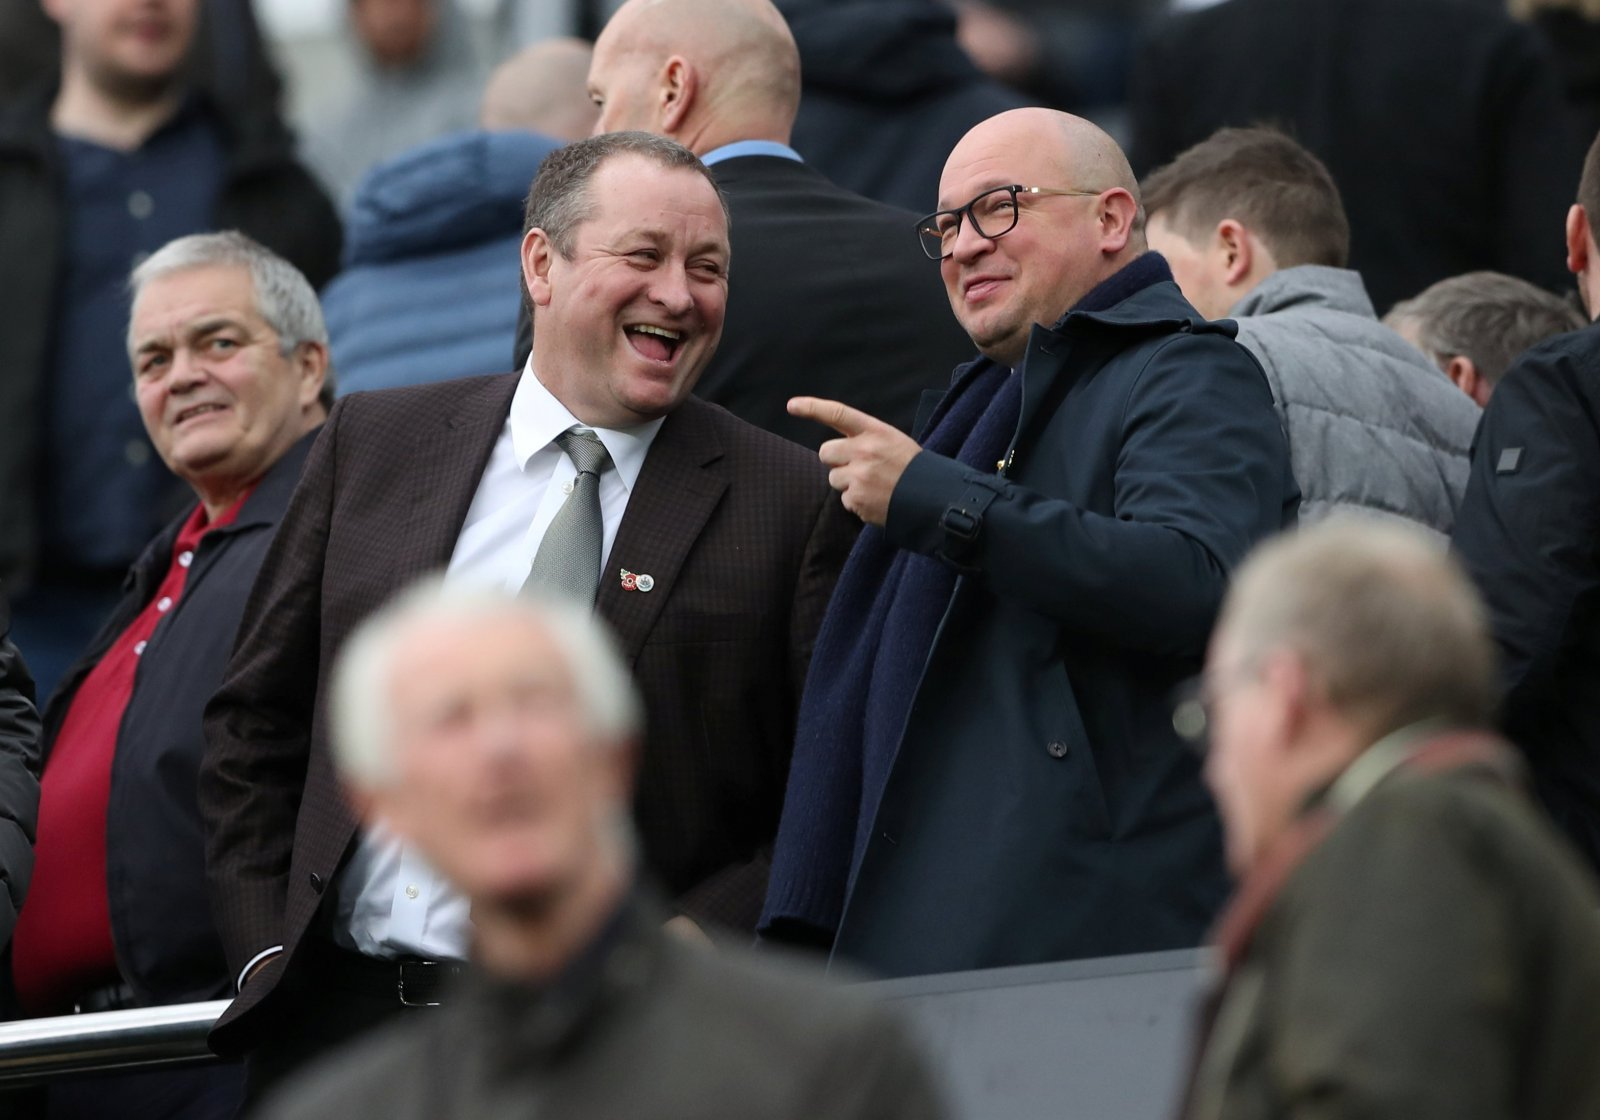 Newcastle United: Club make bold financial claim in response to Jeremy Corbyn criticism